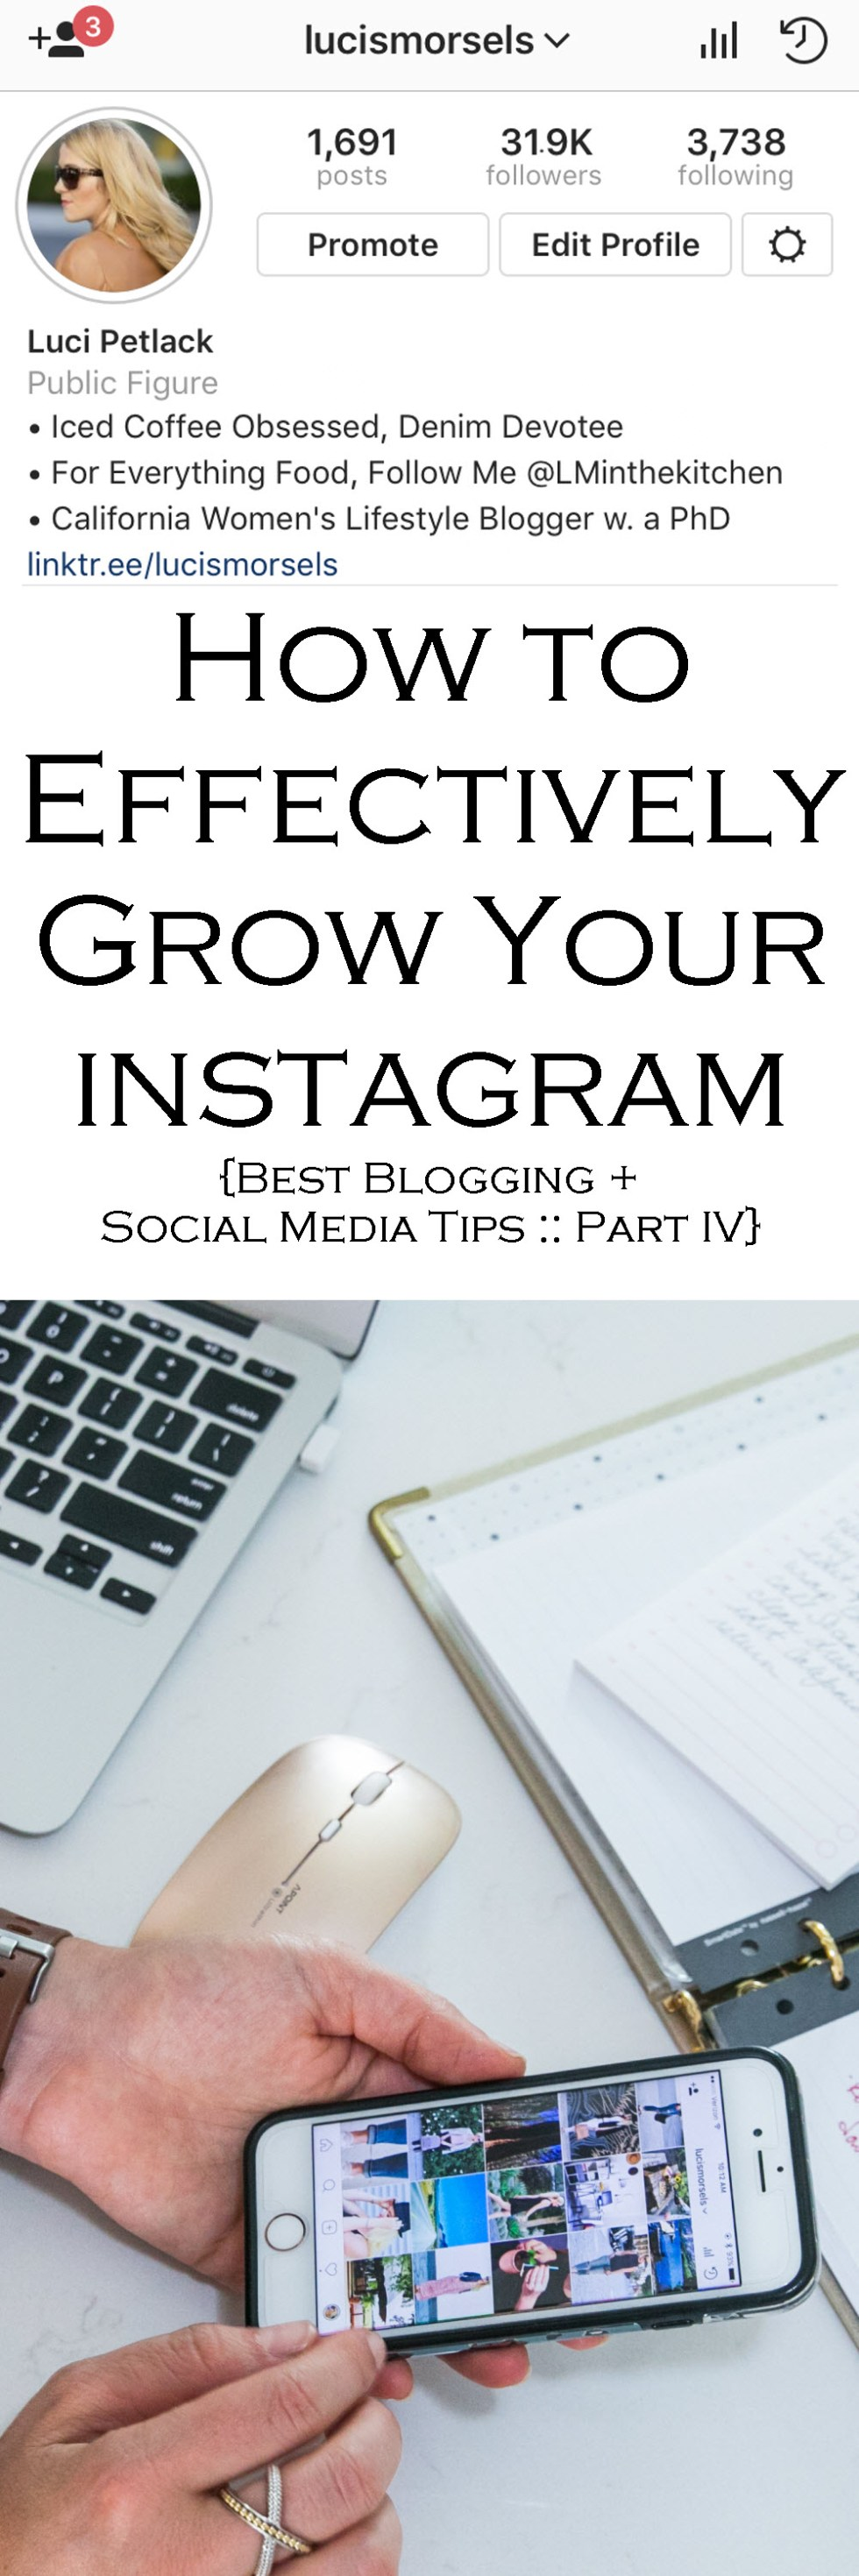 Blogging Tips Series - How to Grow Your Instagram Followers and Engagement